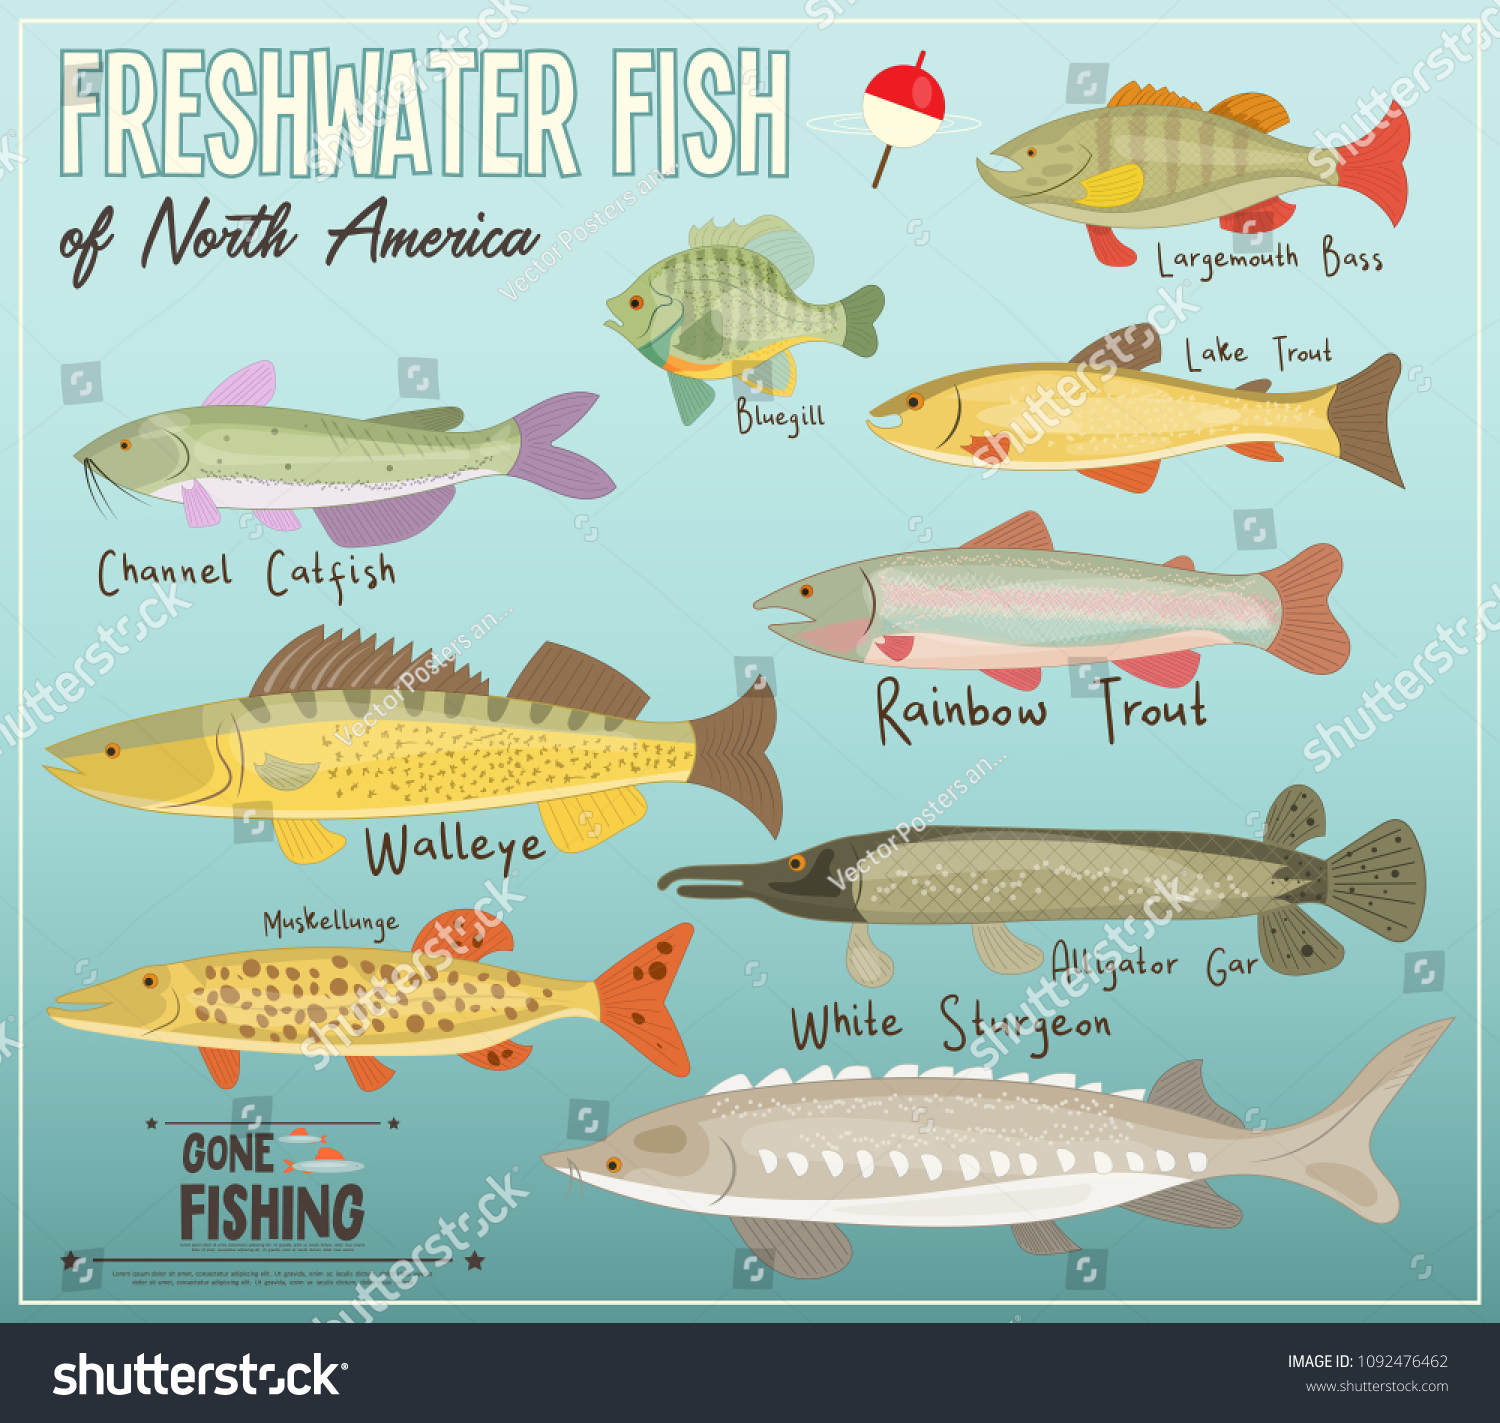 NORTH AMERICAN FISH ID CHART GLOSSY POSTER PICTURE PHOTO BANNER PRINT cool 5671